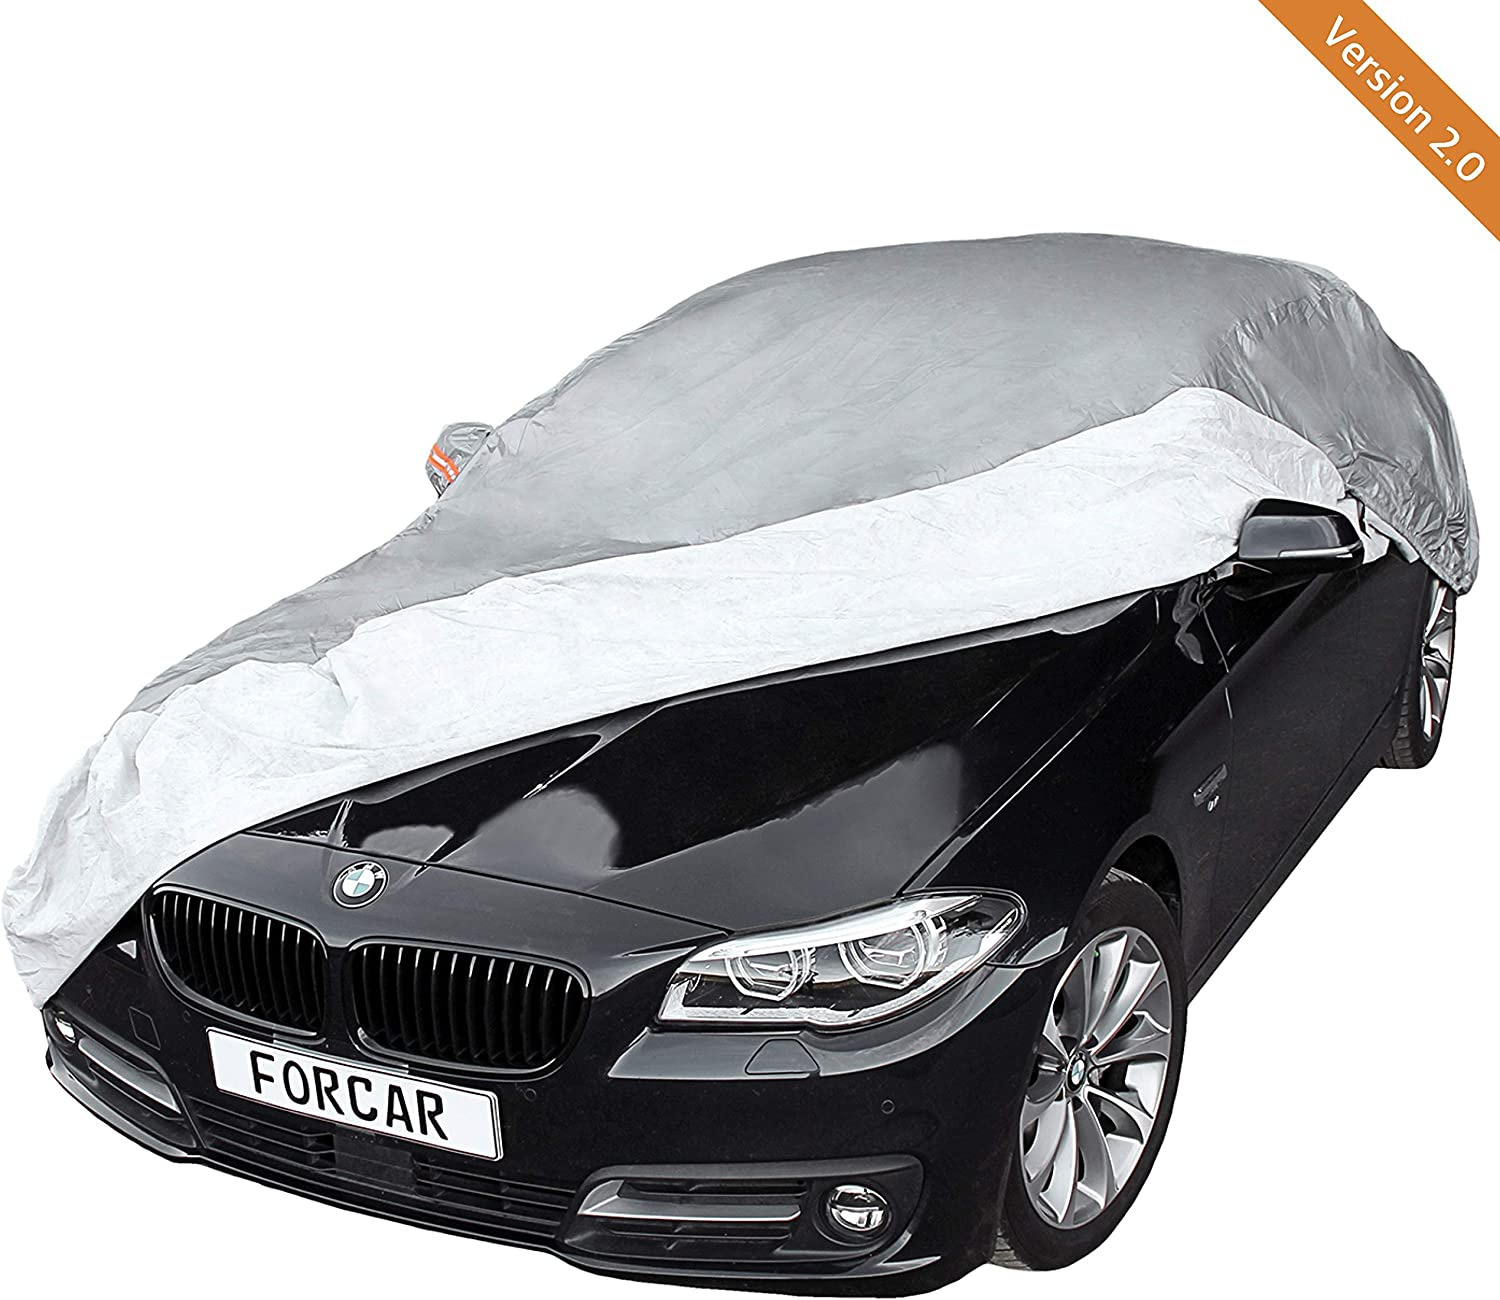 car cover breathable and easy to attach full car cover with cotton lining car cover FORCAR/® premium car cover made and waterproof material version 2019